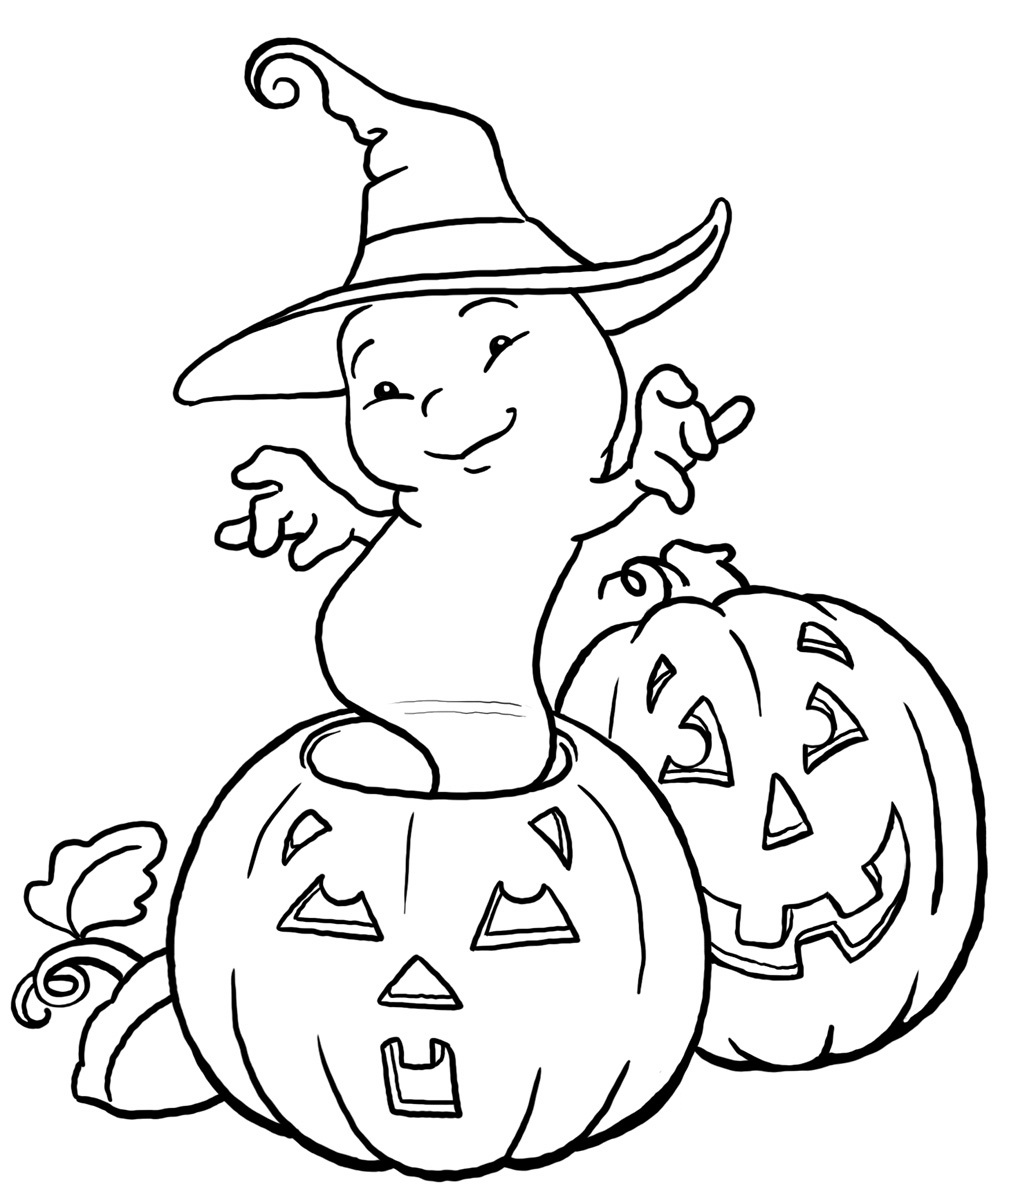 Free printable ghost coloring pages for kids for Printable halloween coloring pages